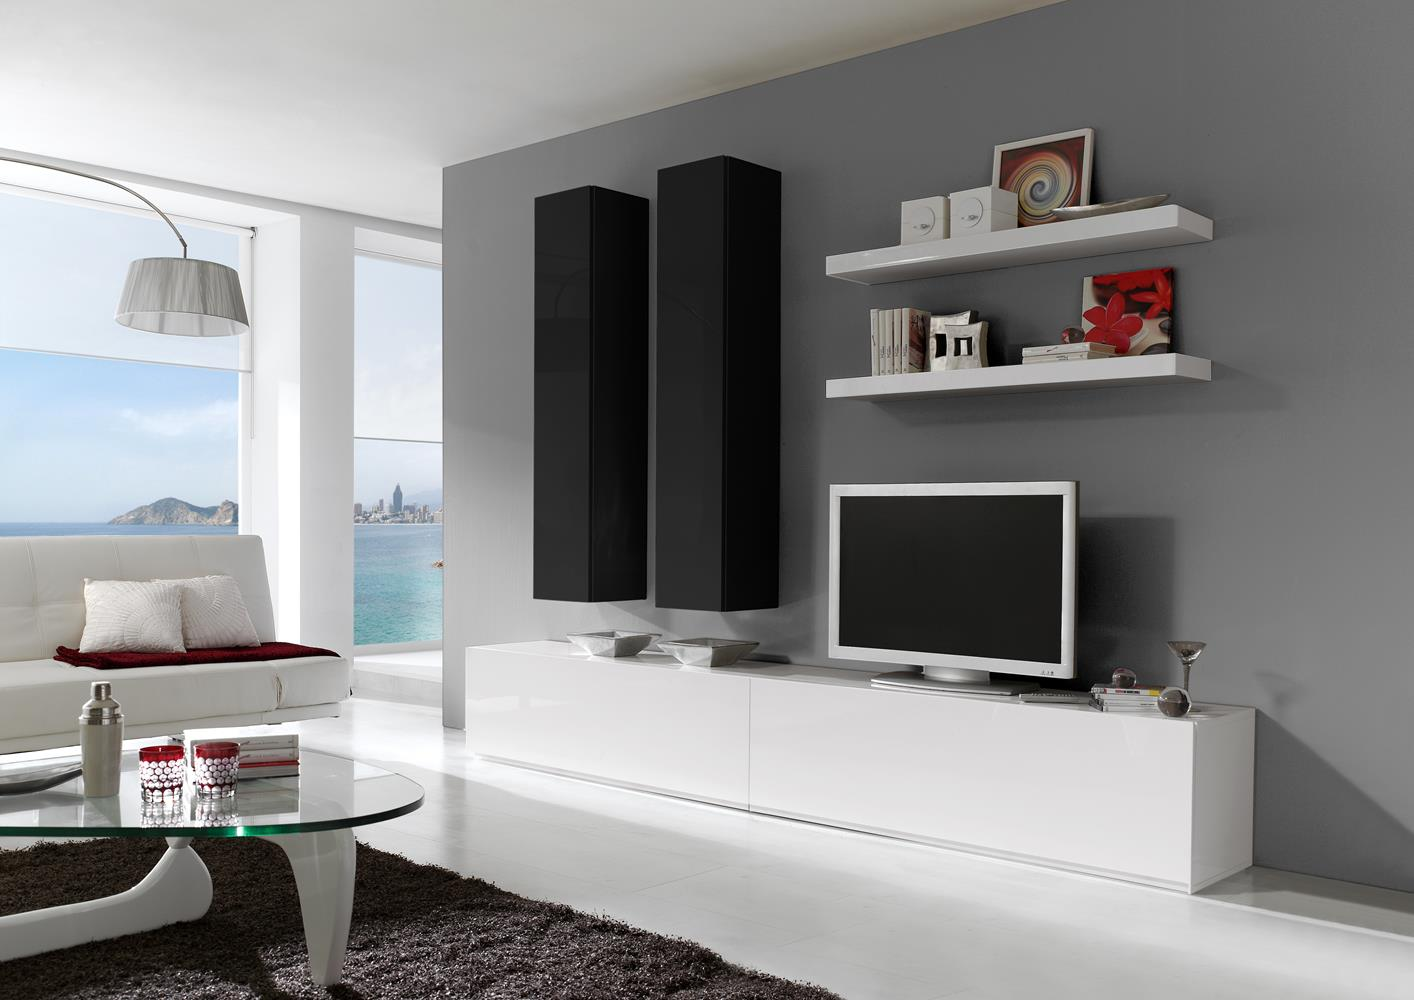 acheter votre composition murale design laqu blanche et. Black Bedroom Furniture Sets. Home Design Ideas